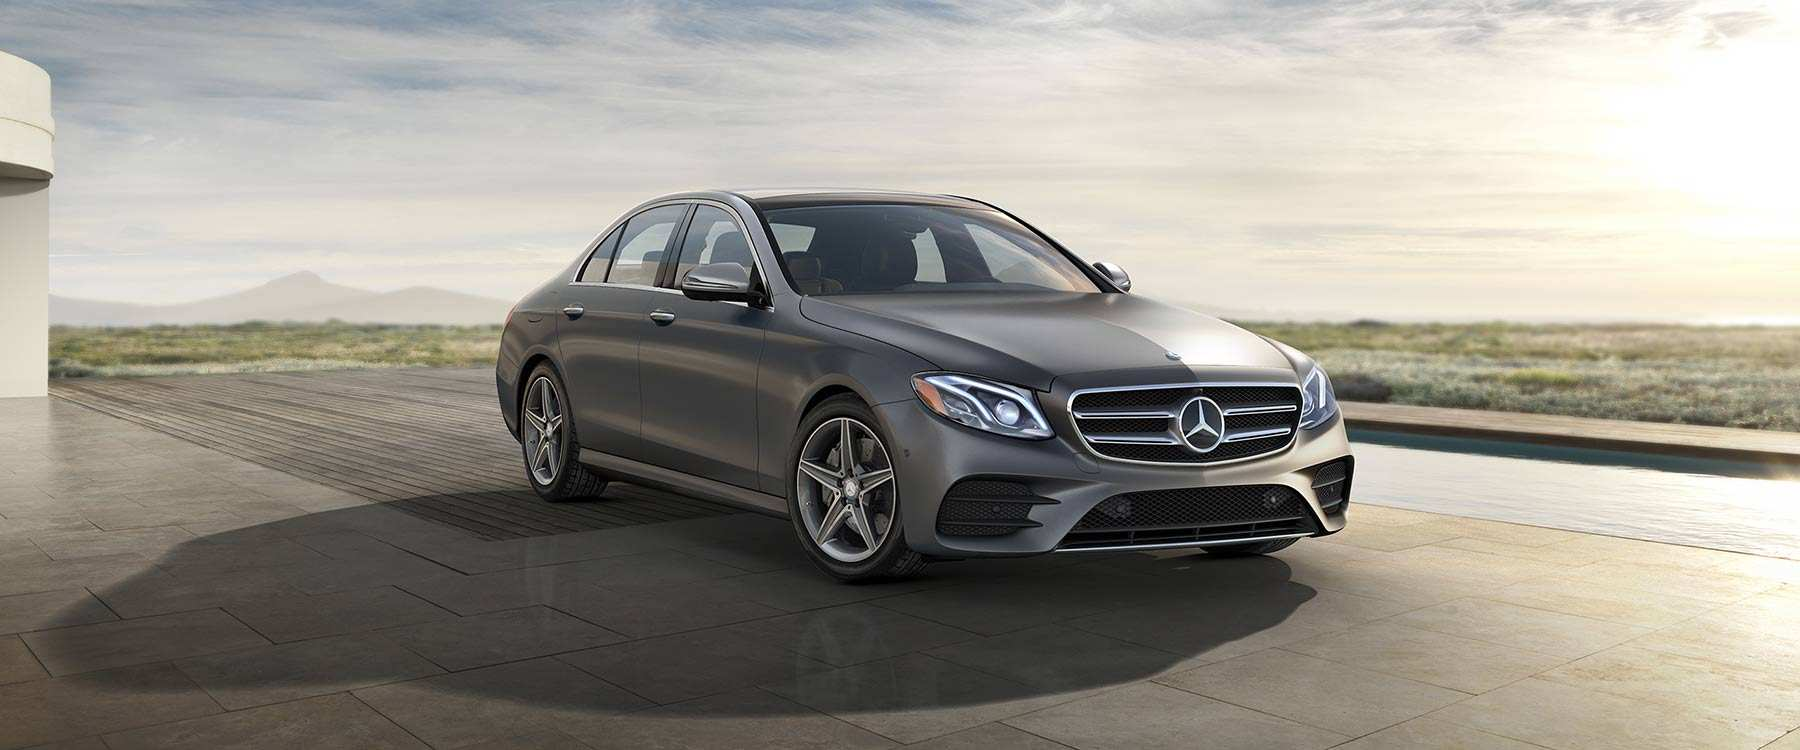 90 All New The E300 Mercedes 2019 Specs Picture by The E300 Mercedes 2019 Specs